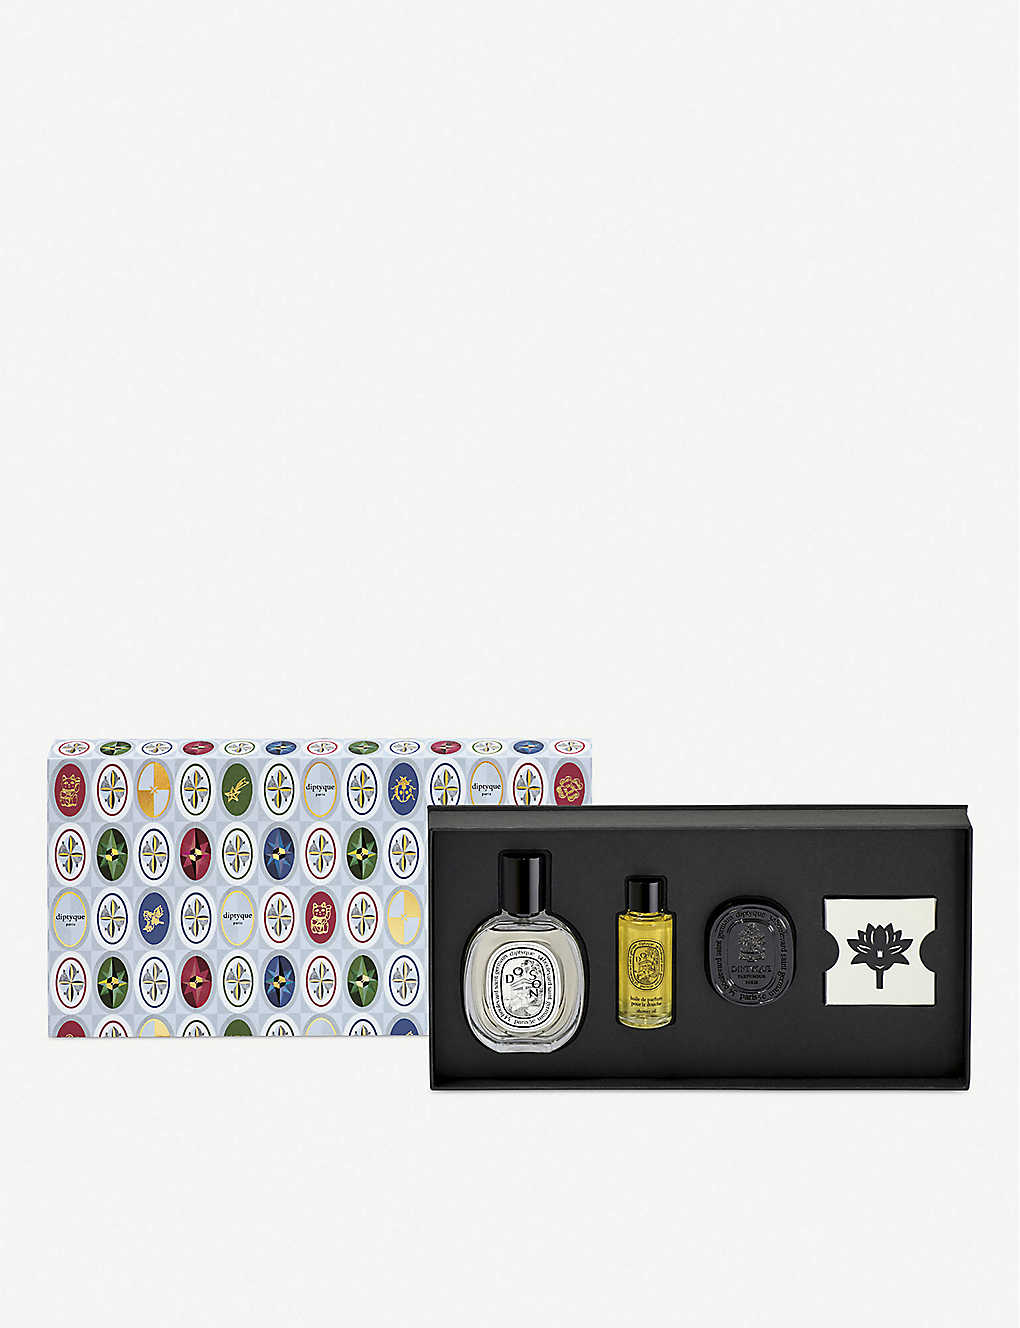 DIPTYQUE: Do Son limited edition set